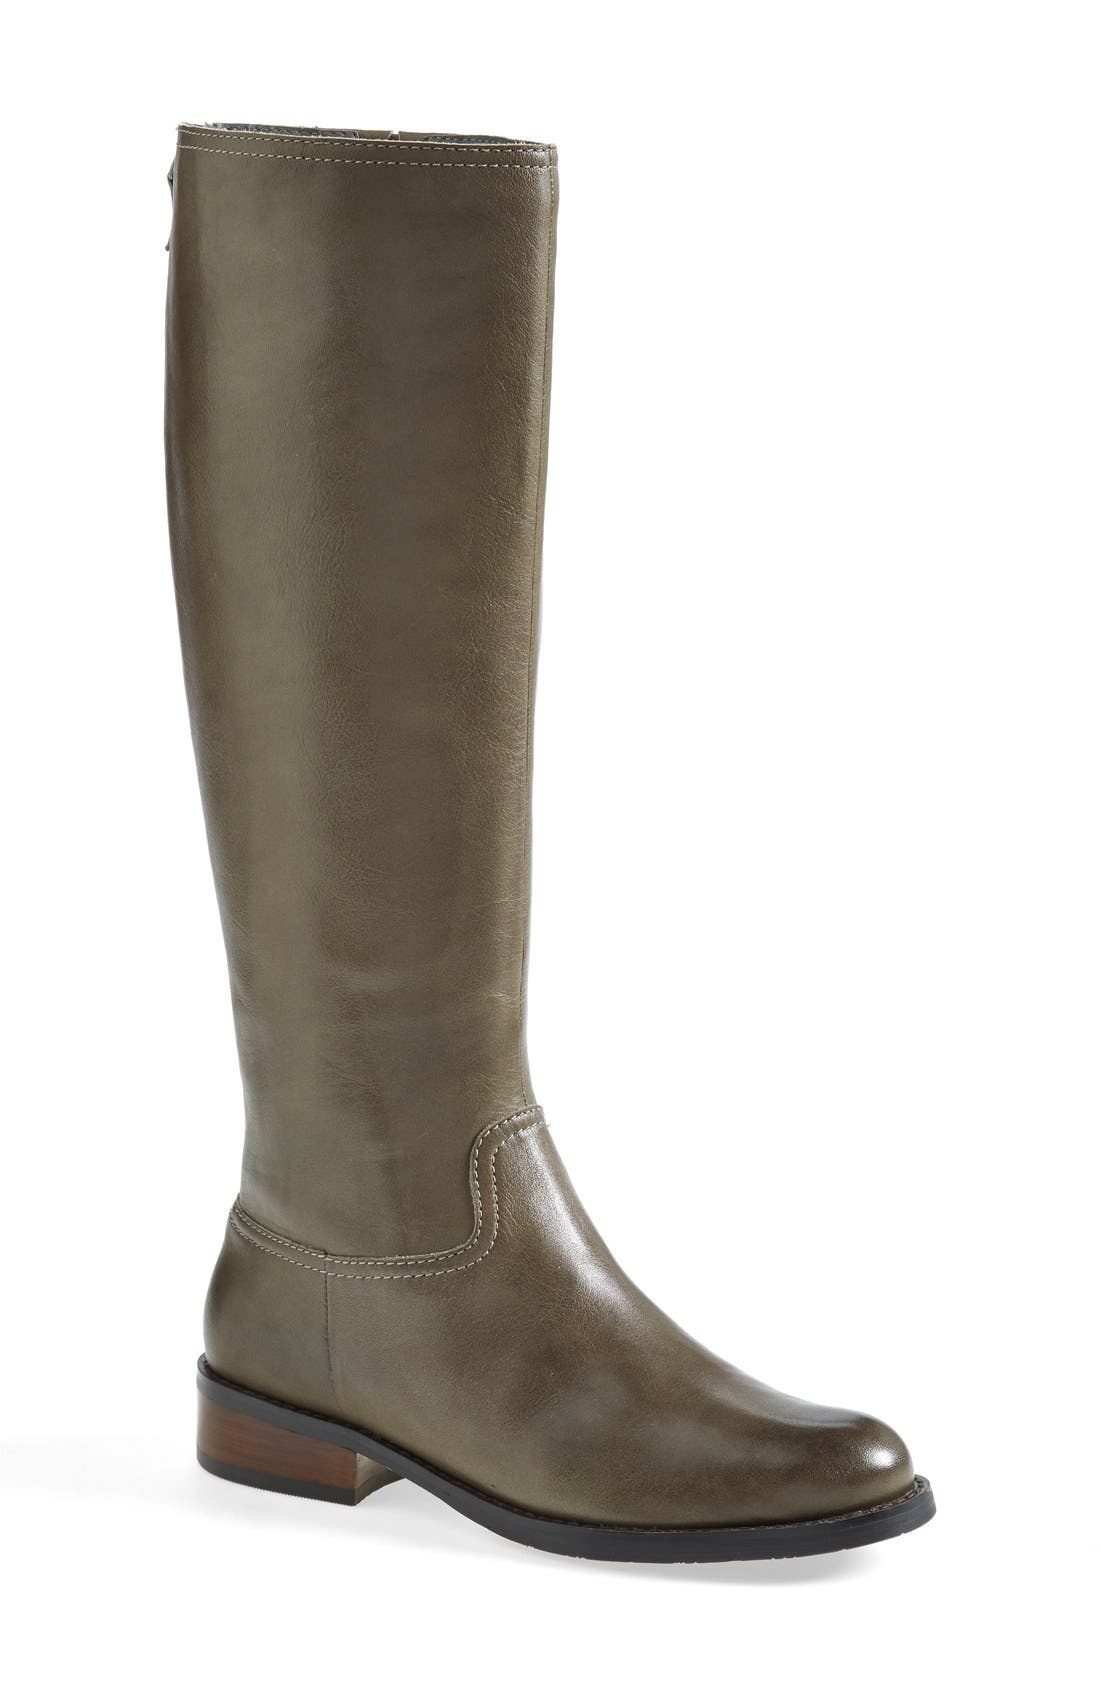 Alternate Image 1 Selected - Halogen® 'Ginger' Knee High Boot (Wide Calf) (Women)